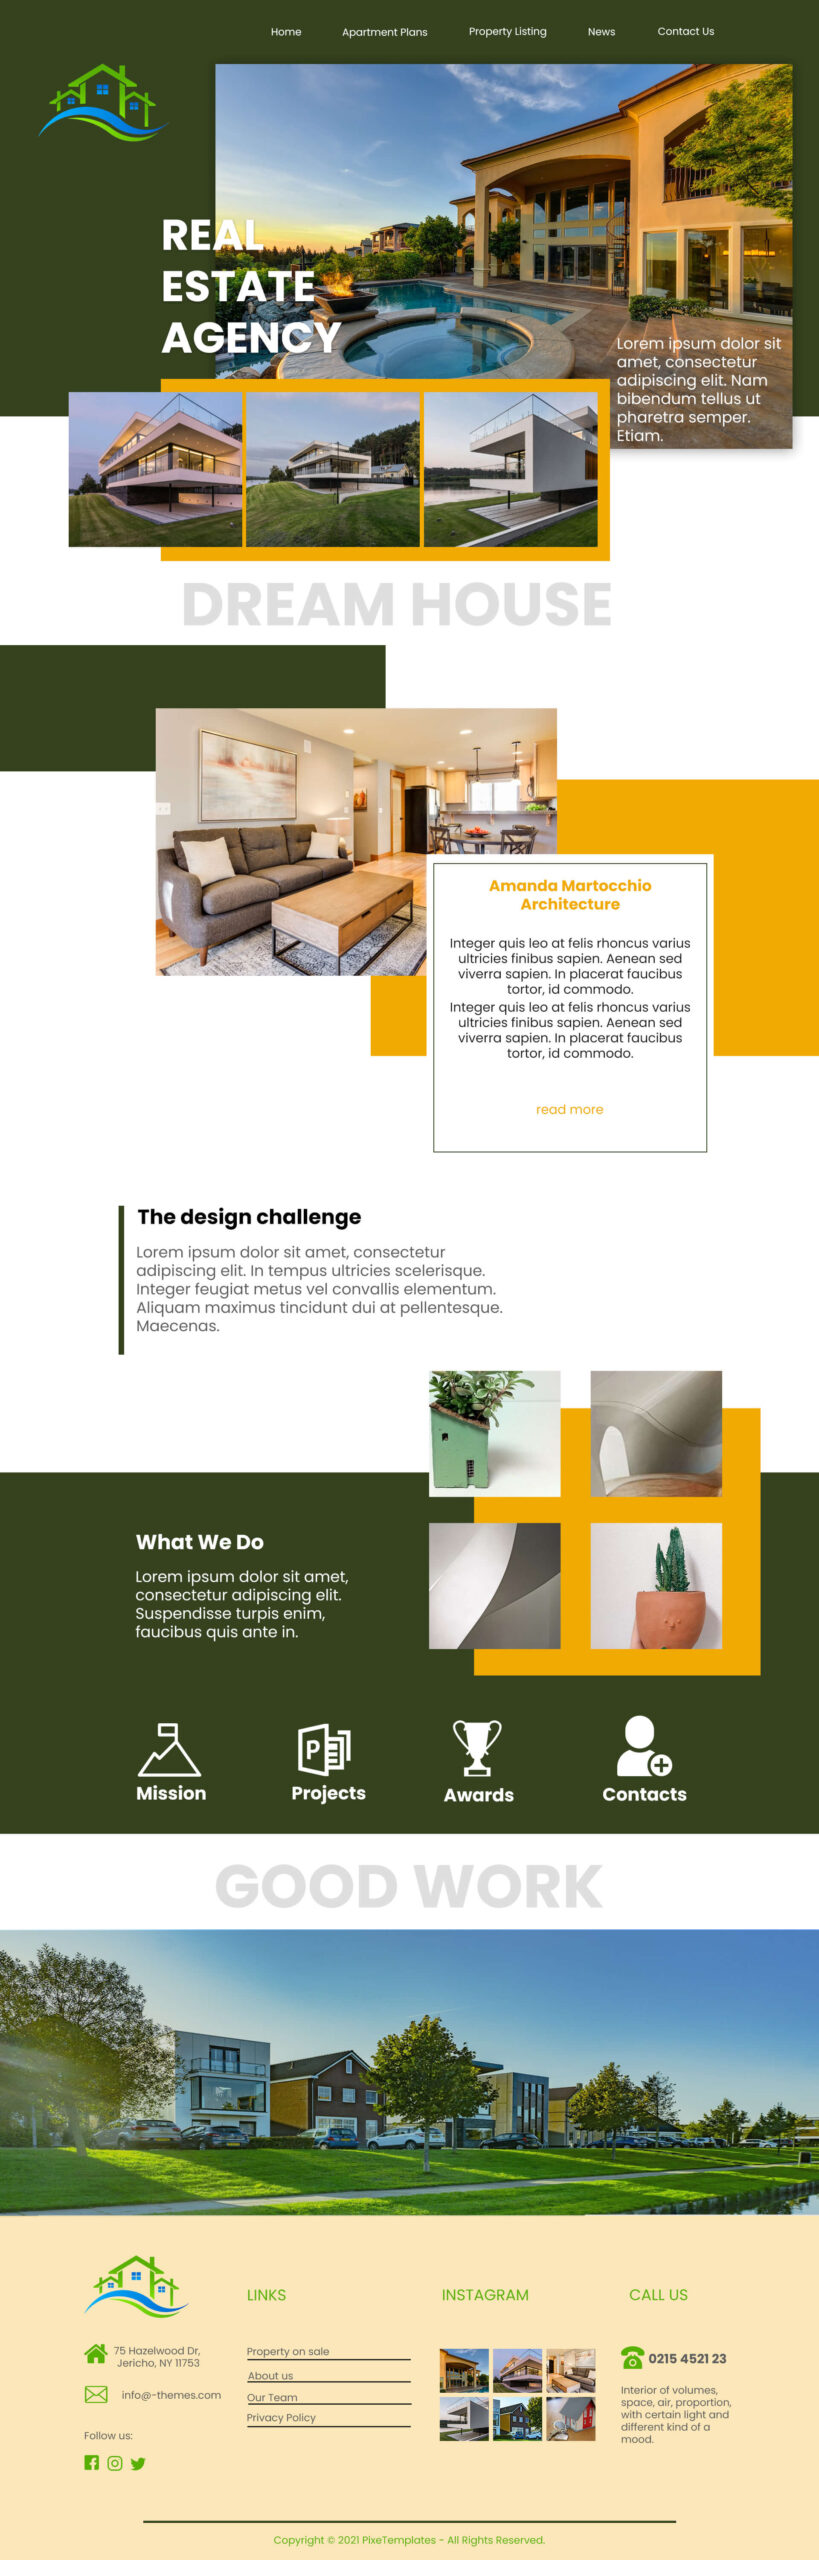 Real Estate Agency WordPress Theme in Photoshop Source File